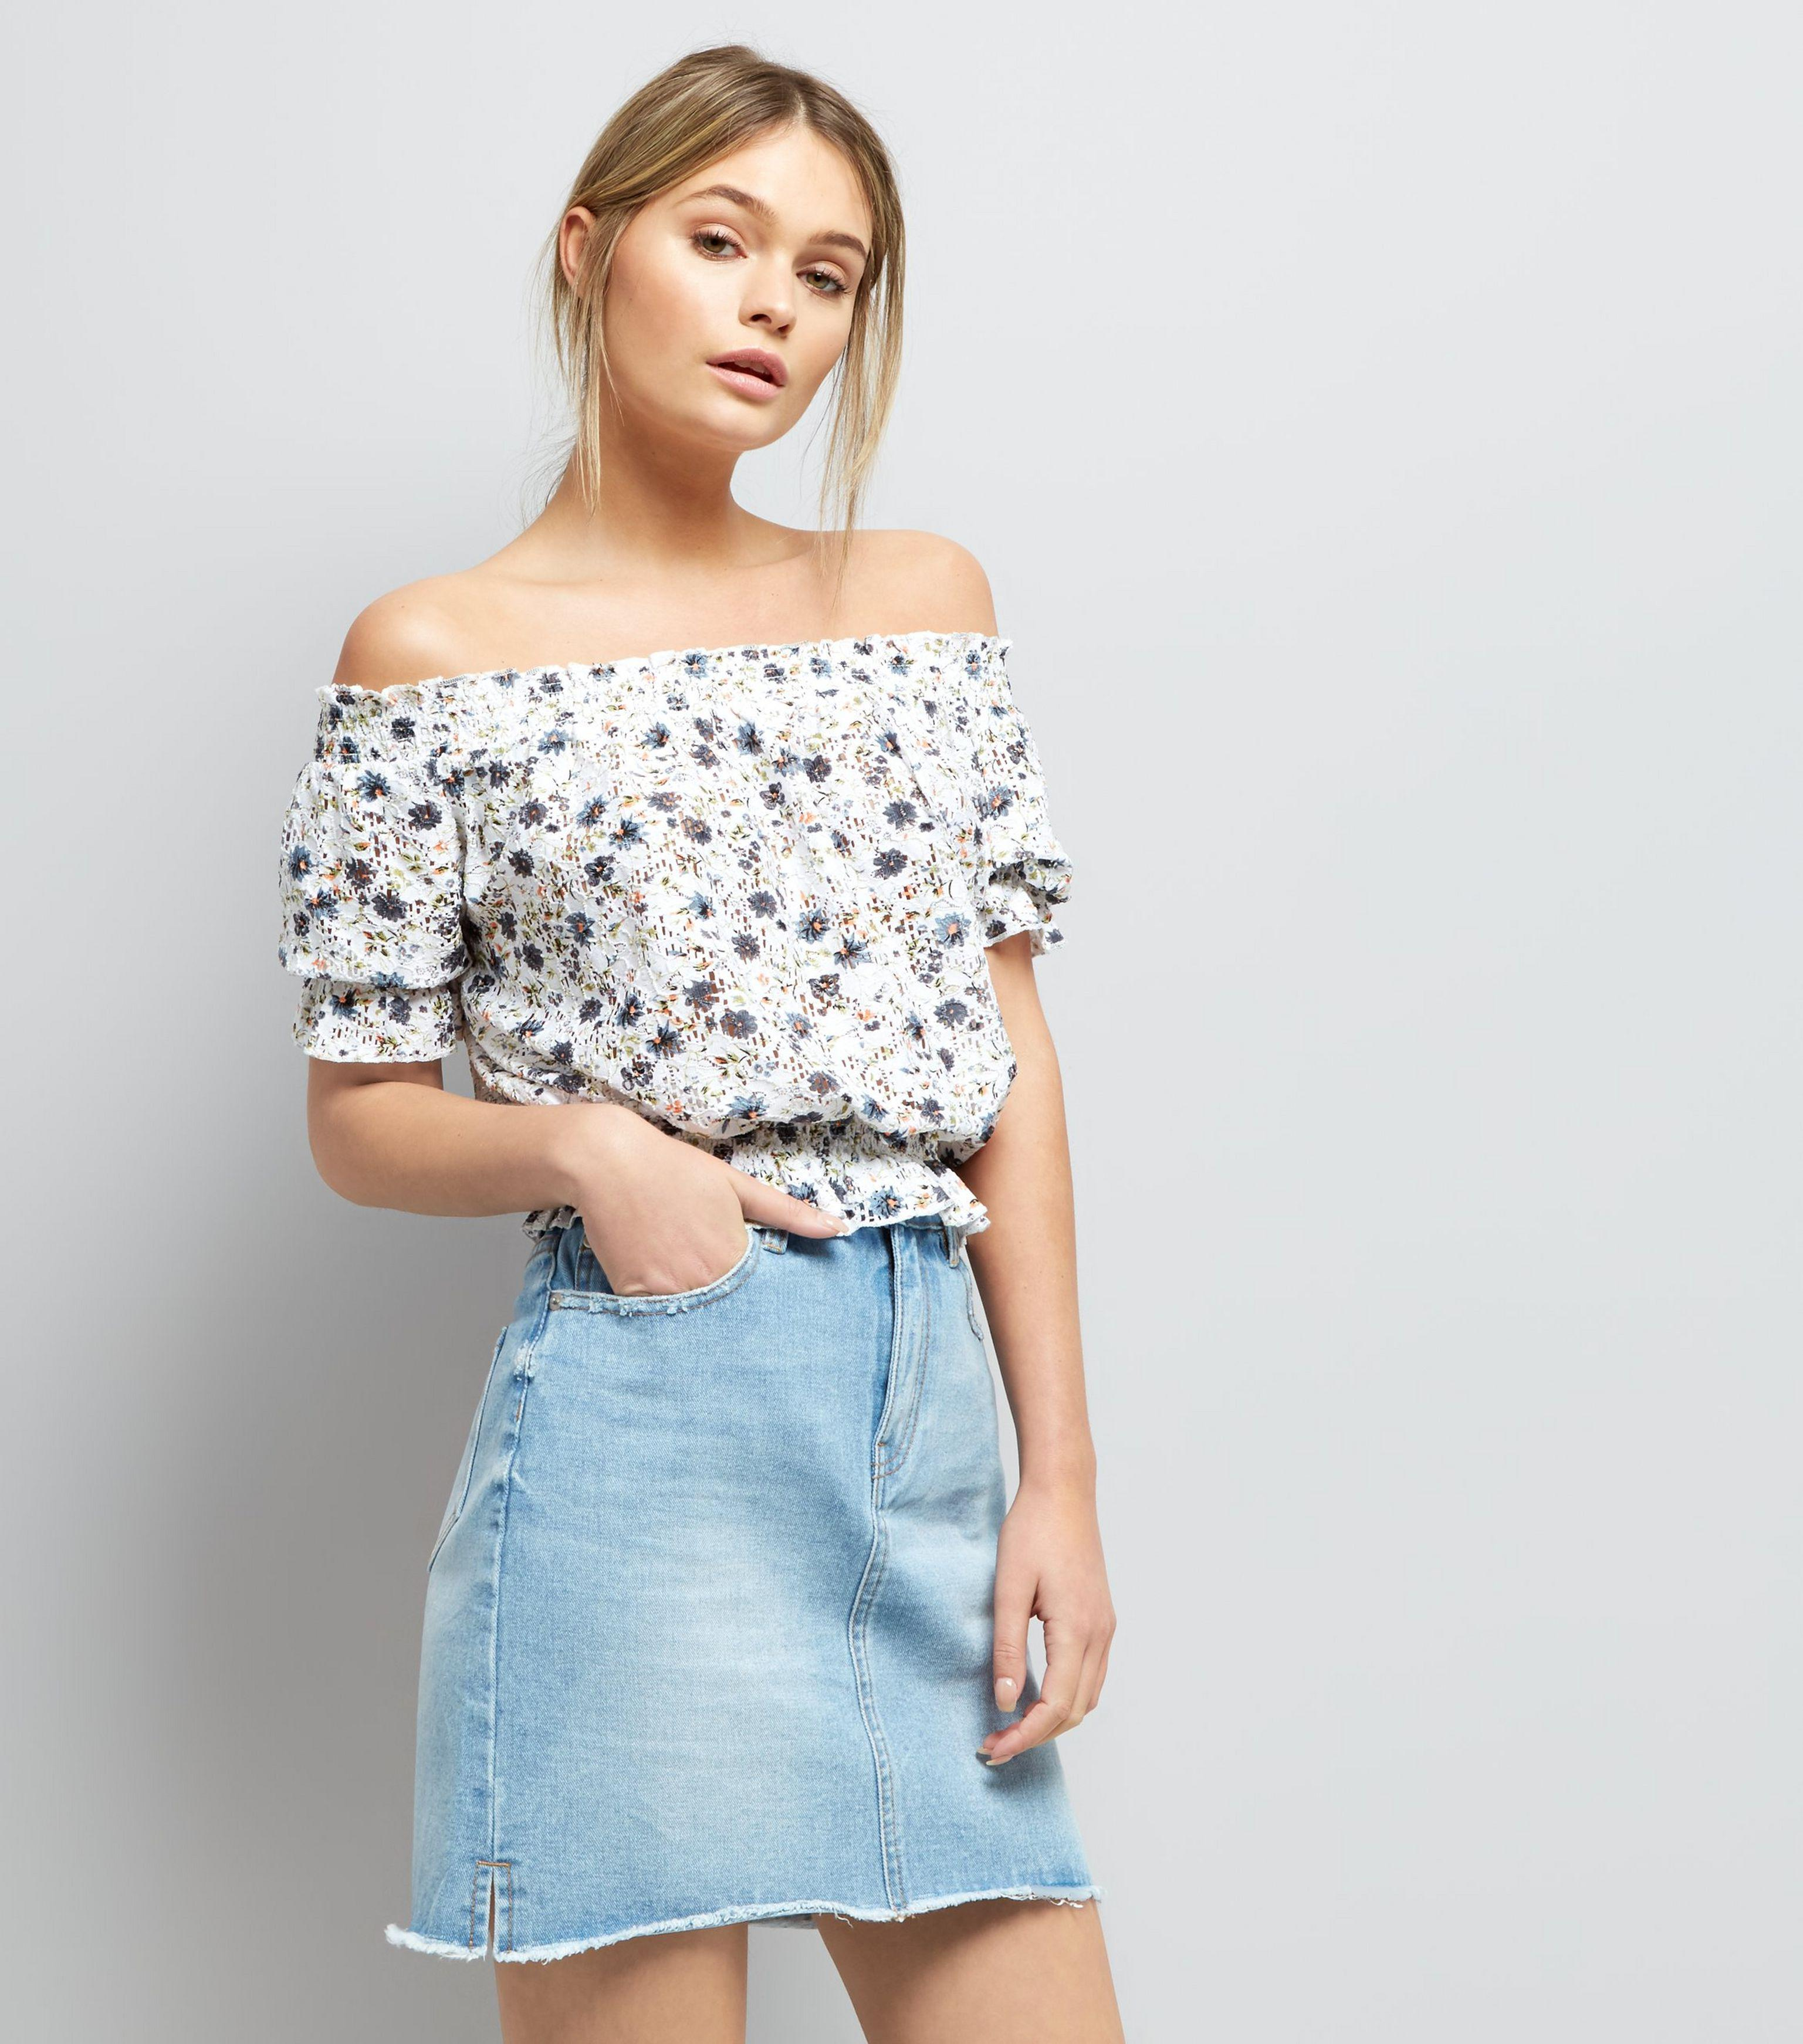 7f82322ace76ea New Look Blue Ditsy Floral Print Shirred Bardot Neck Top in Blue - Lyst